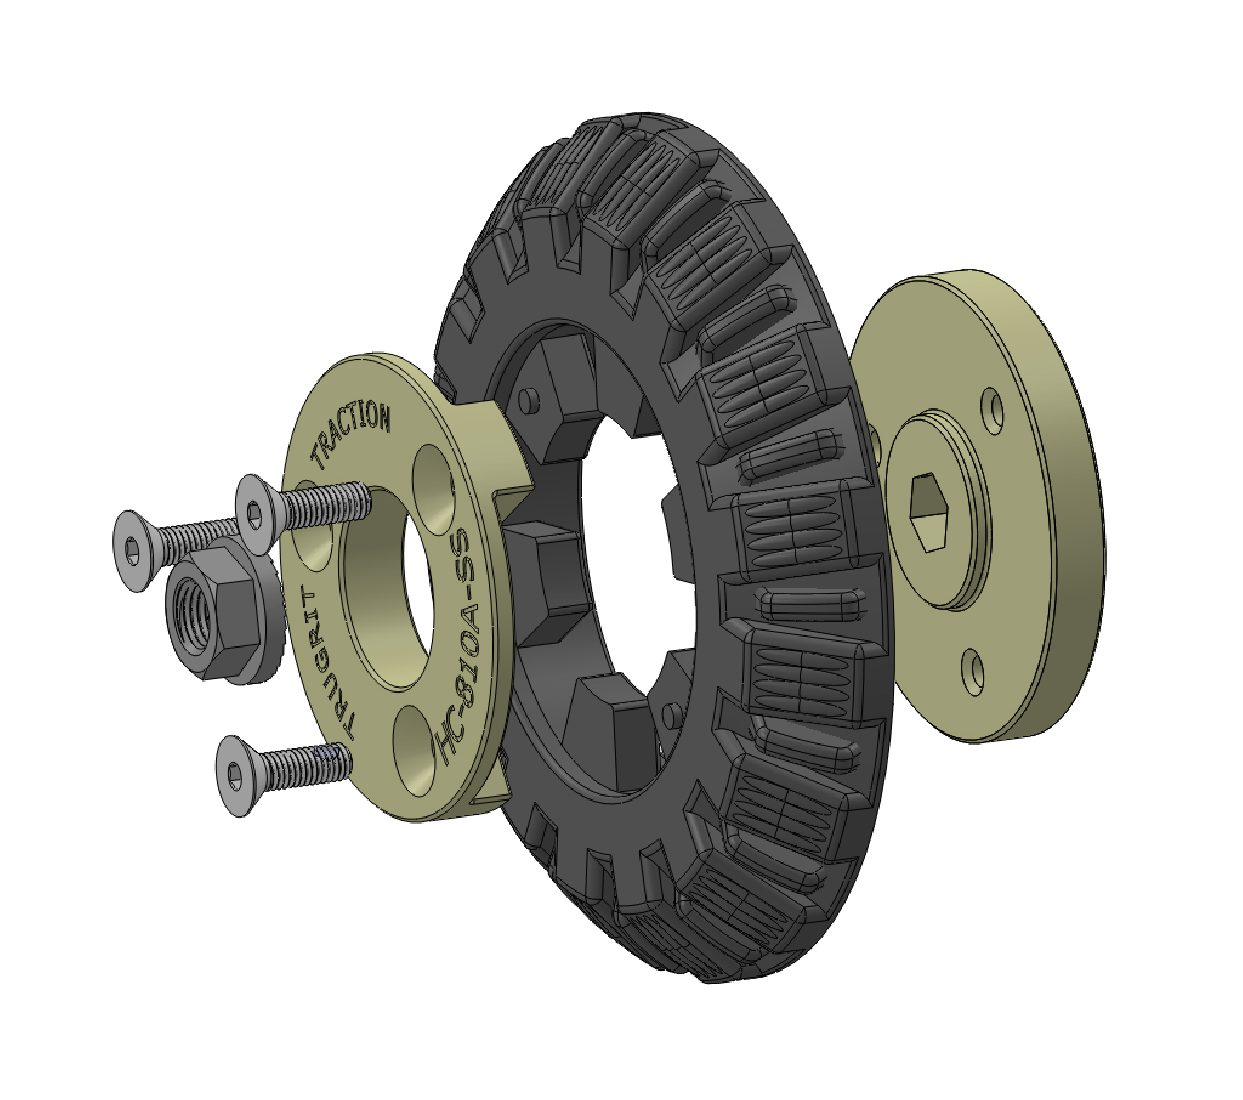 wheel replacement 8 inch adapter tg buy online parts